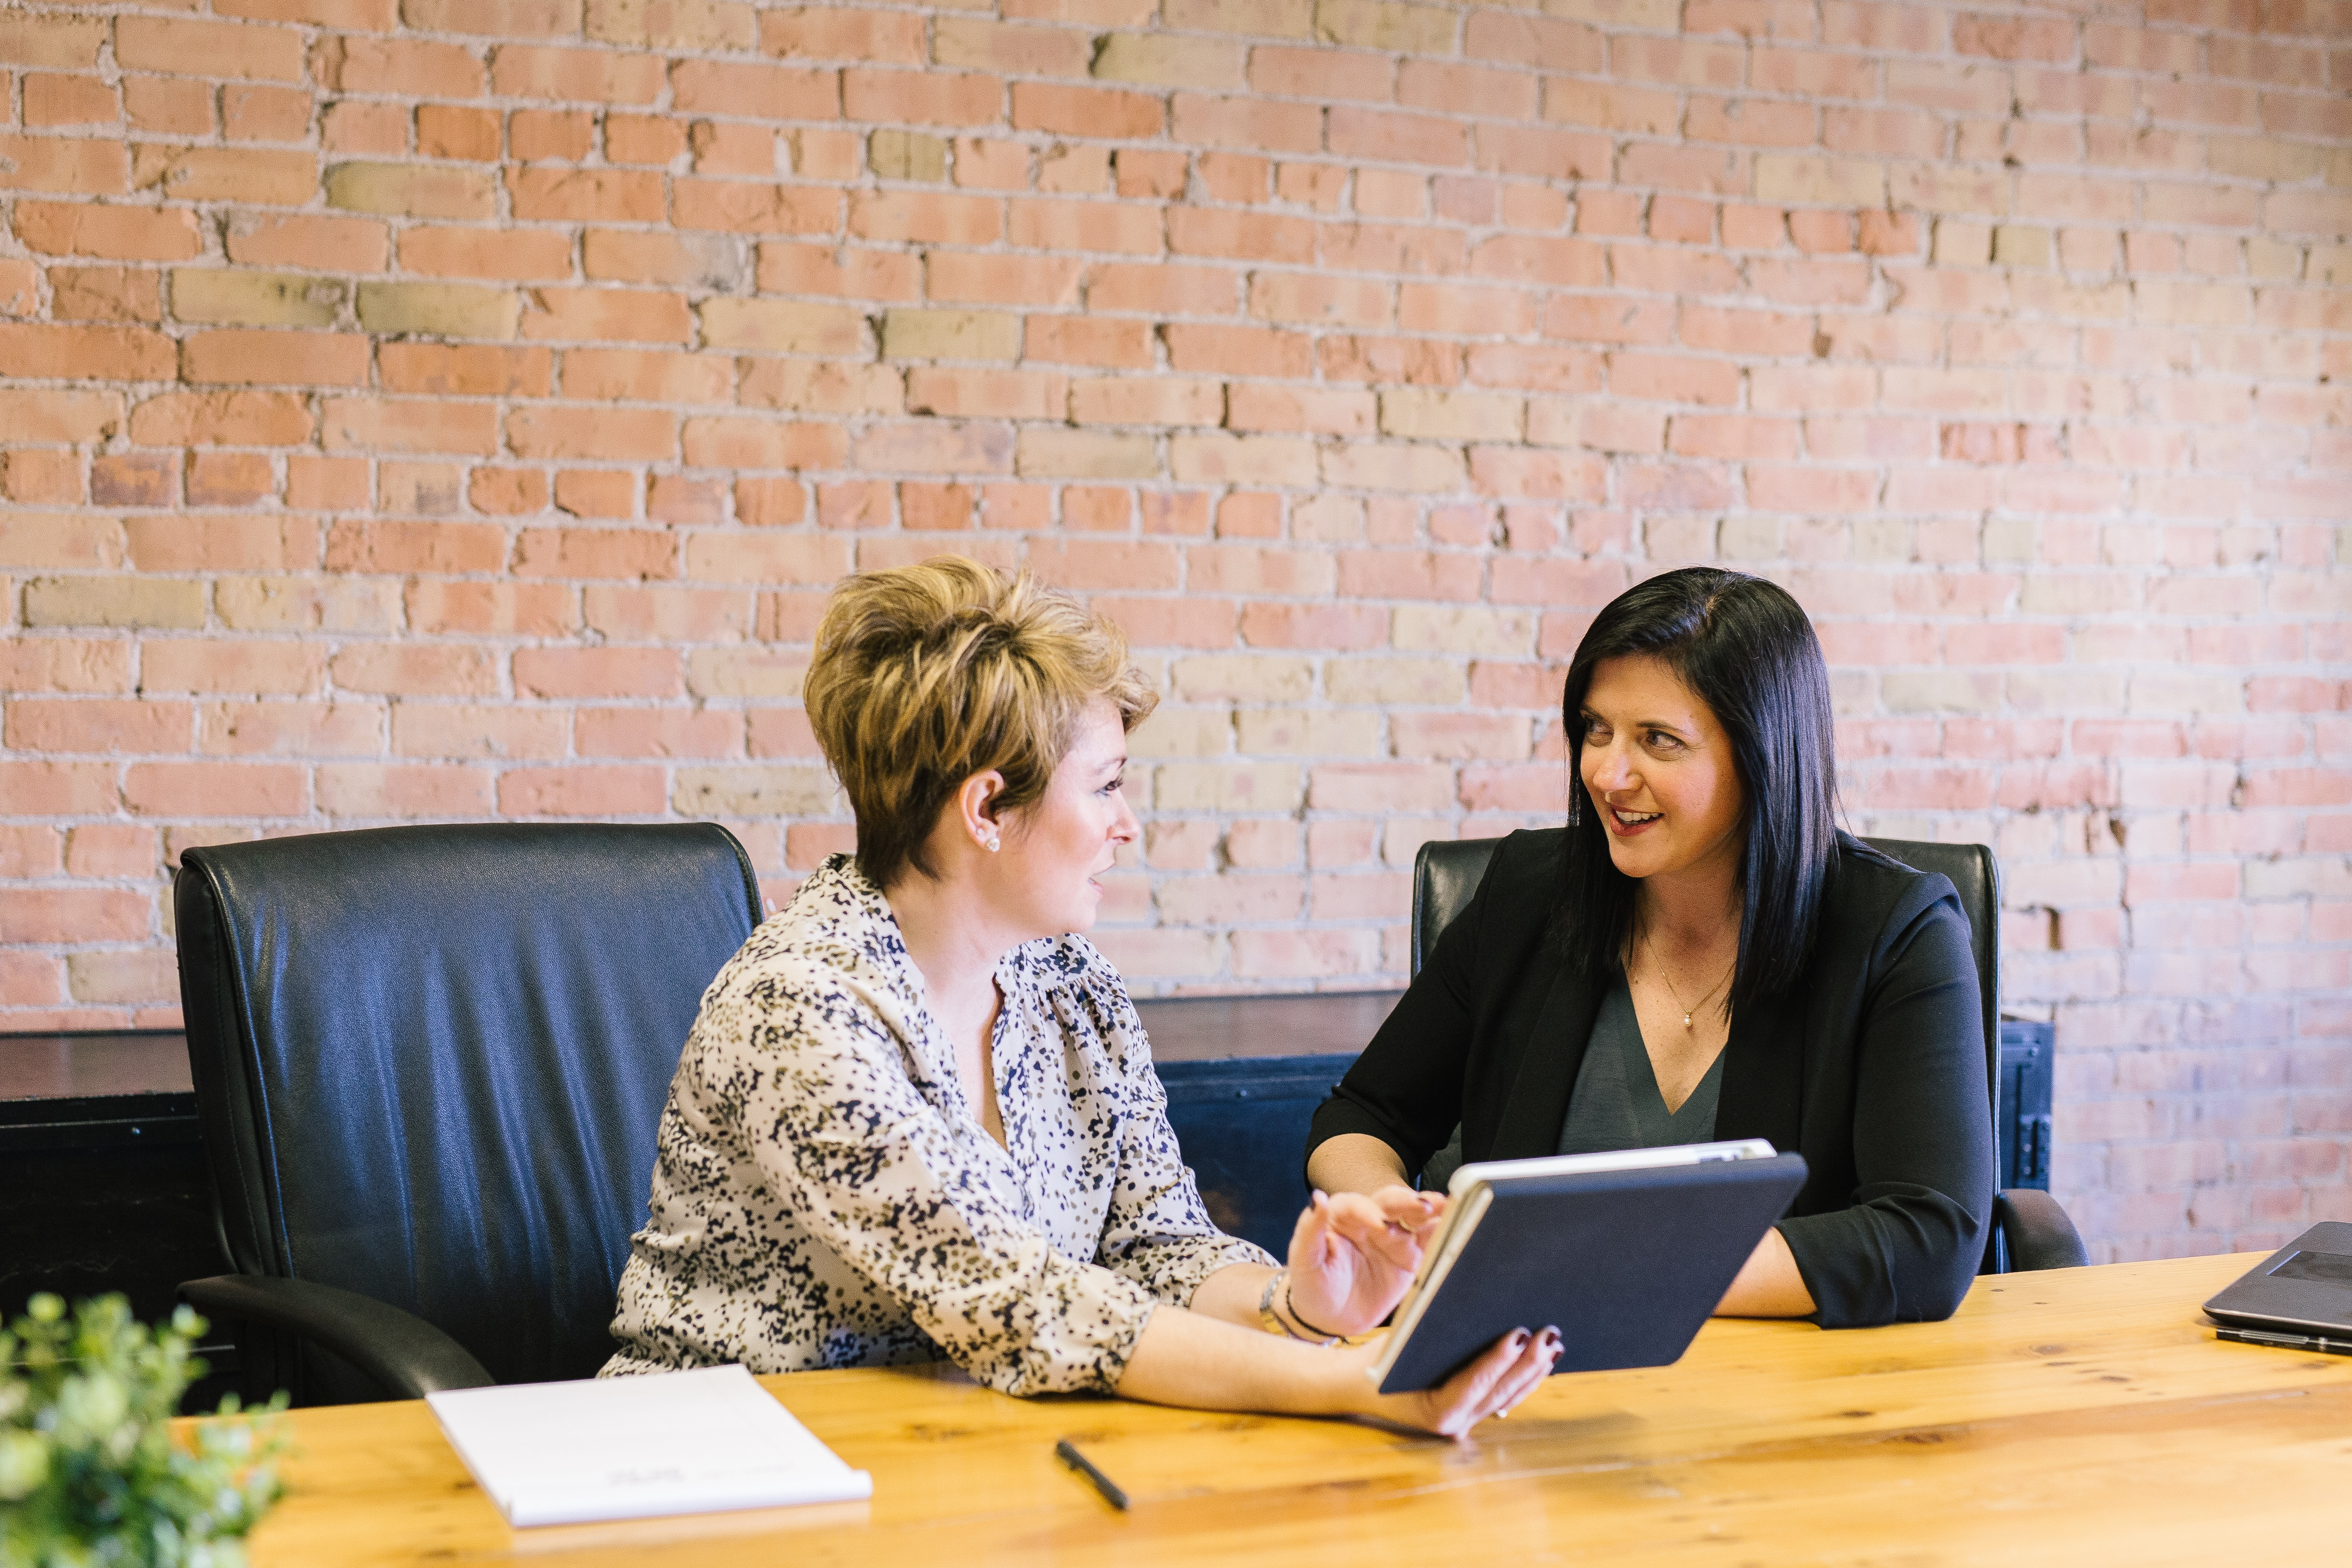 6 benefits of one-on-one meetings (1-on-1s)